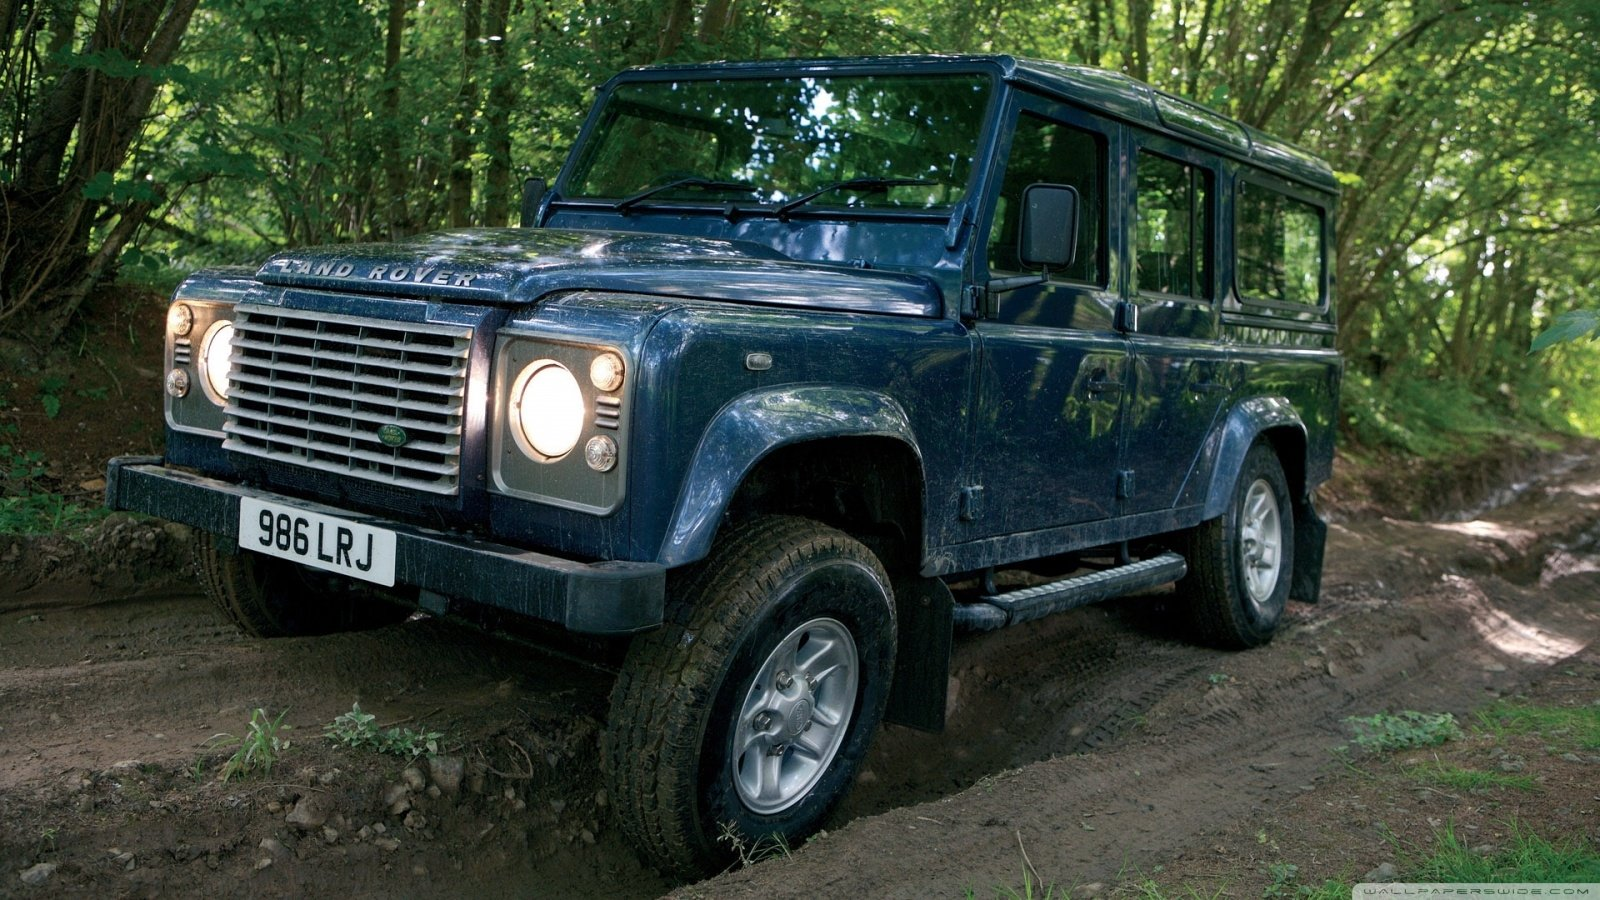 Vehicles - Land Rover Defender  Wallpaper